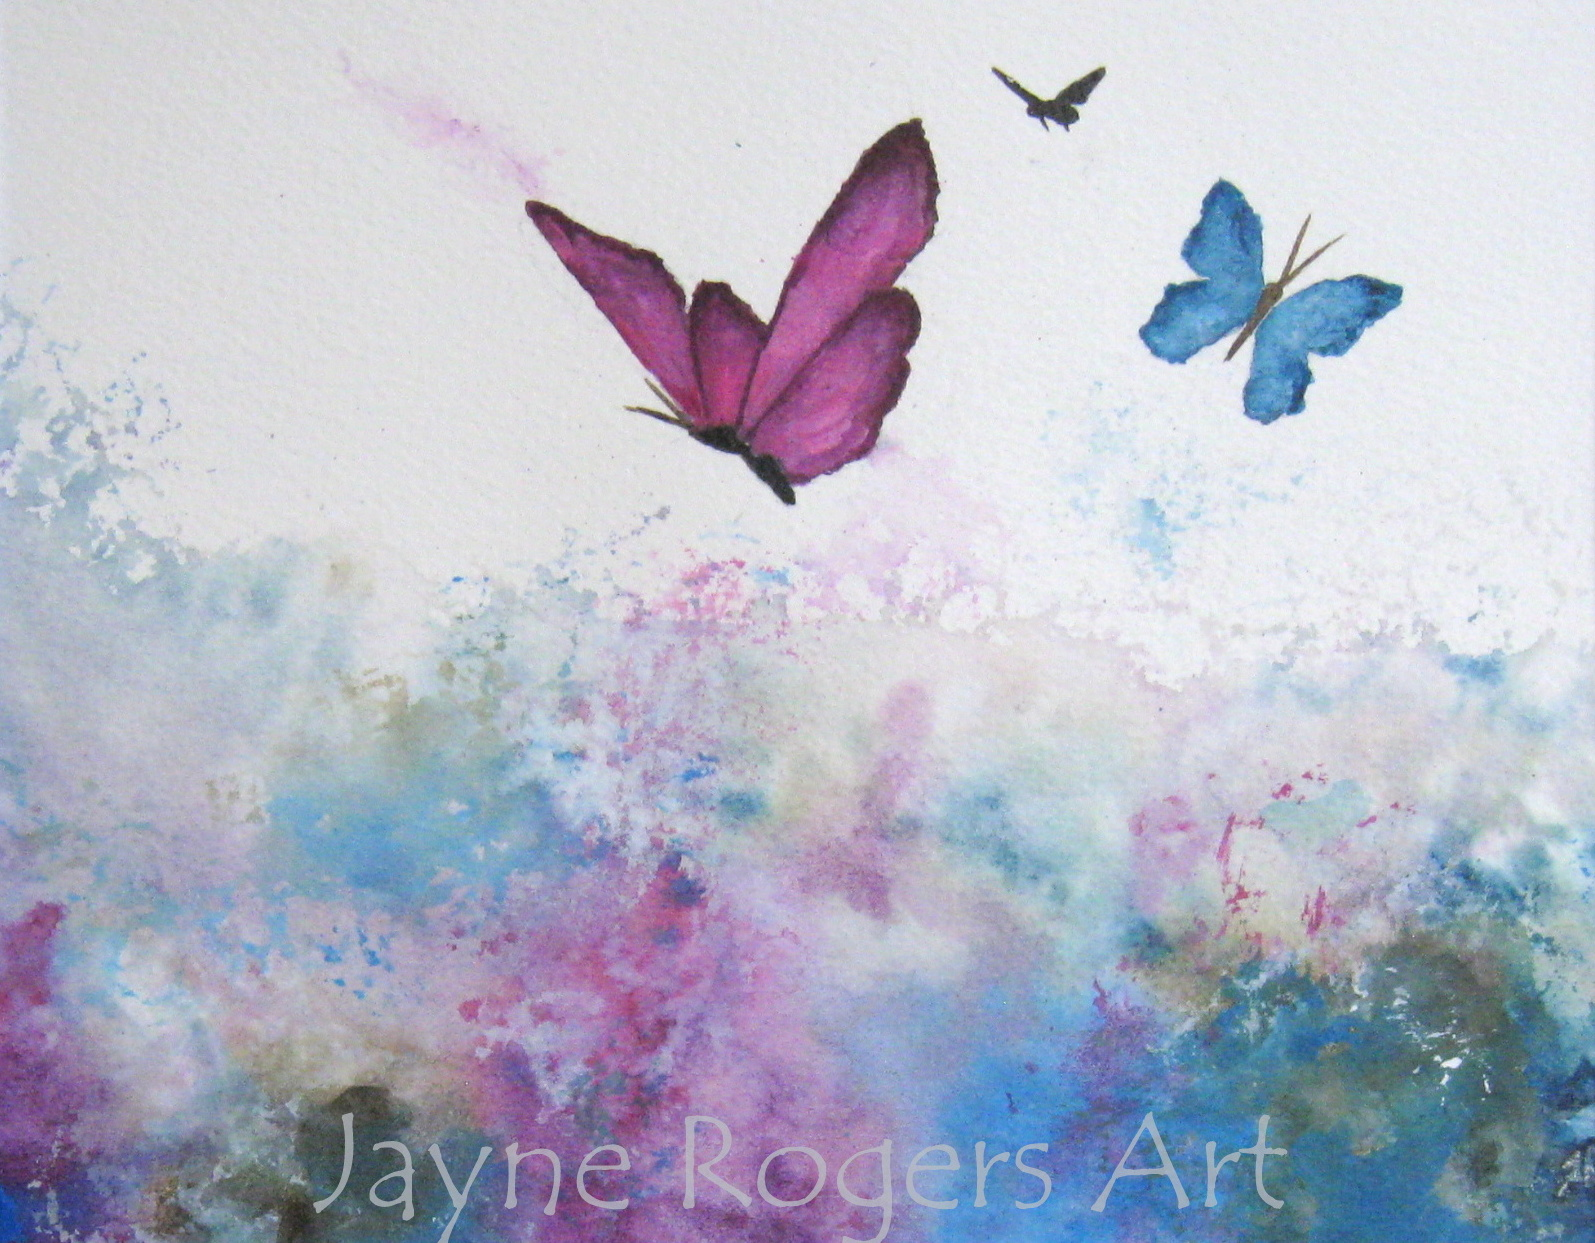 Painted World by Jayne Rogers Art.